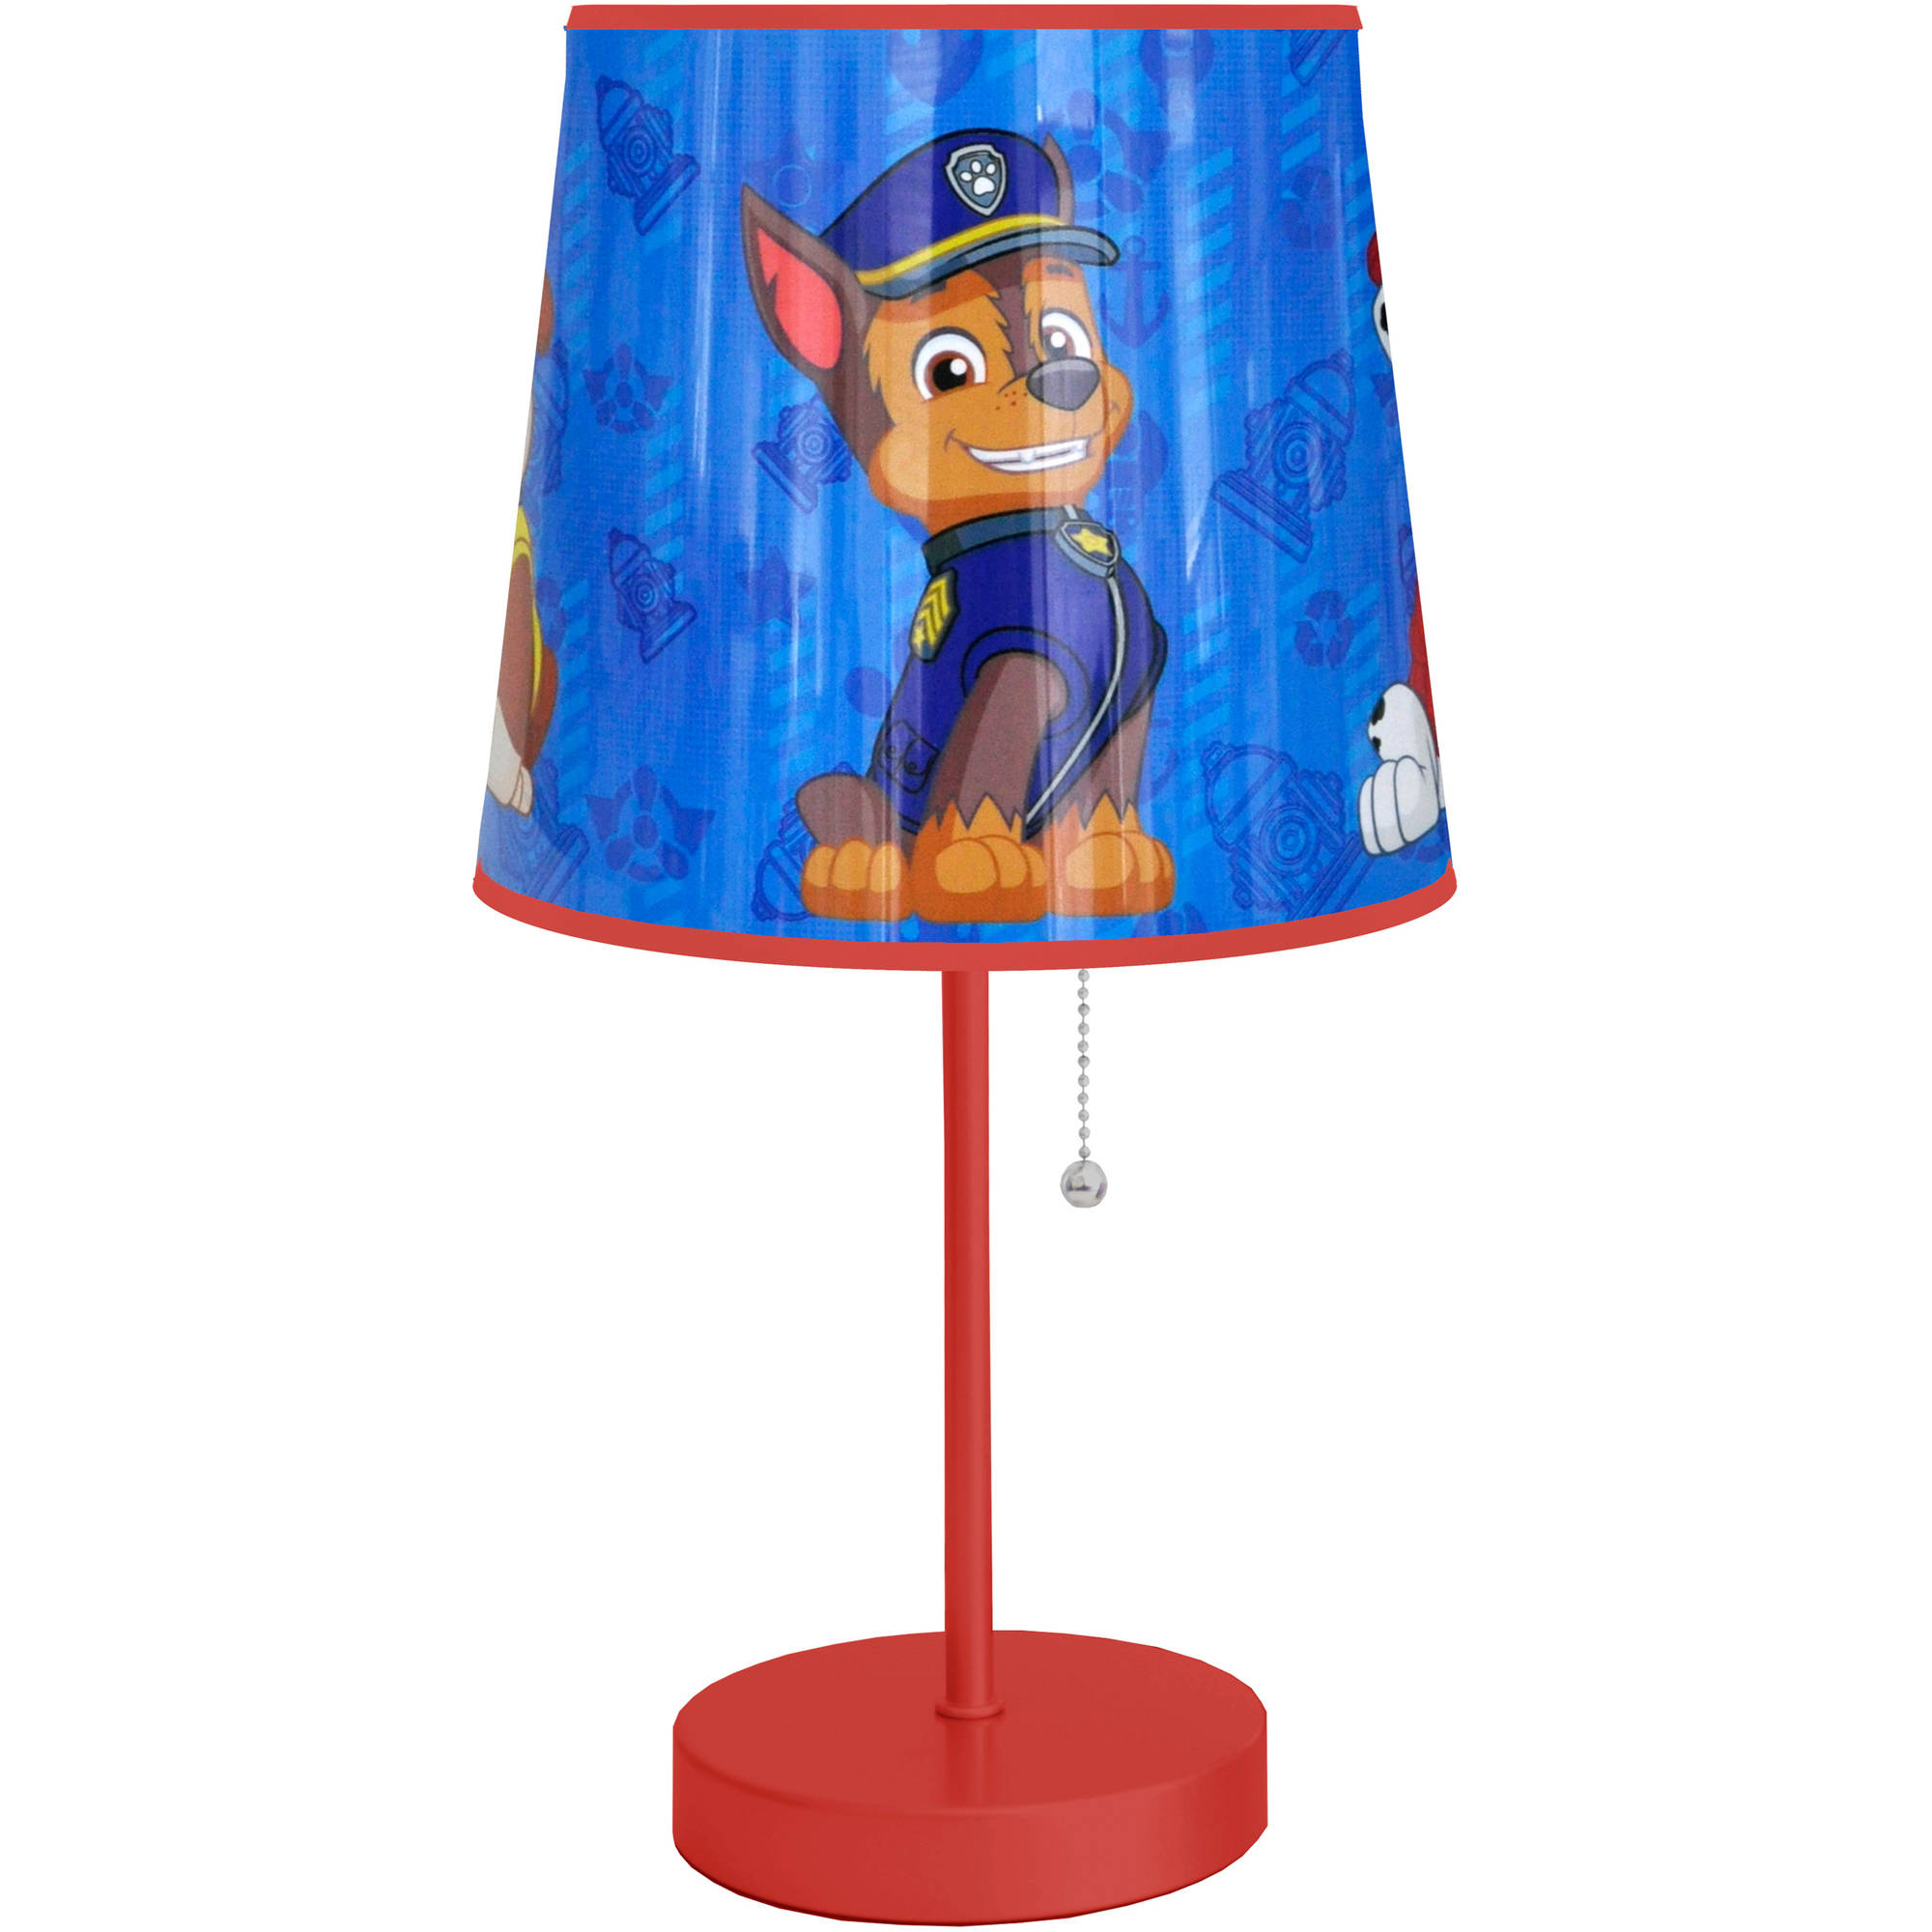 Nickelodeon PAW Patrol Table Lamp